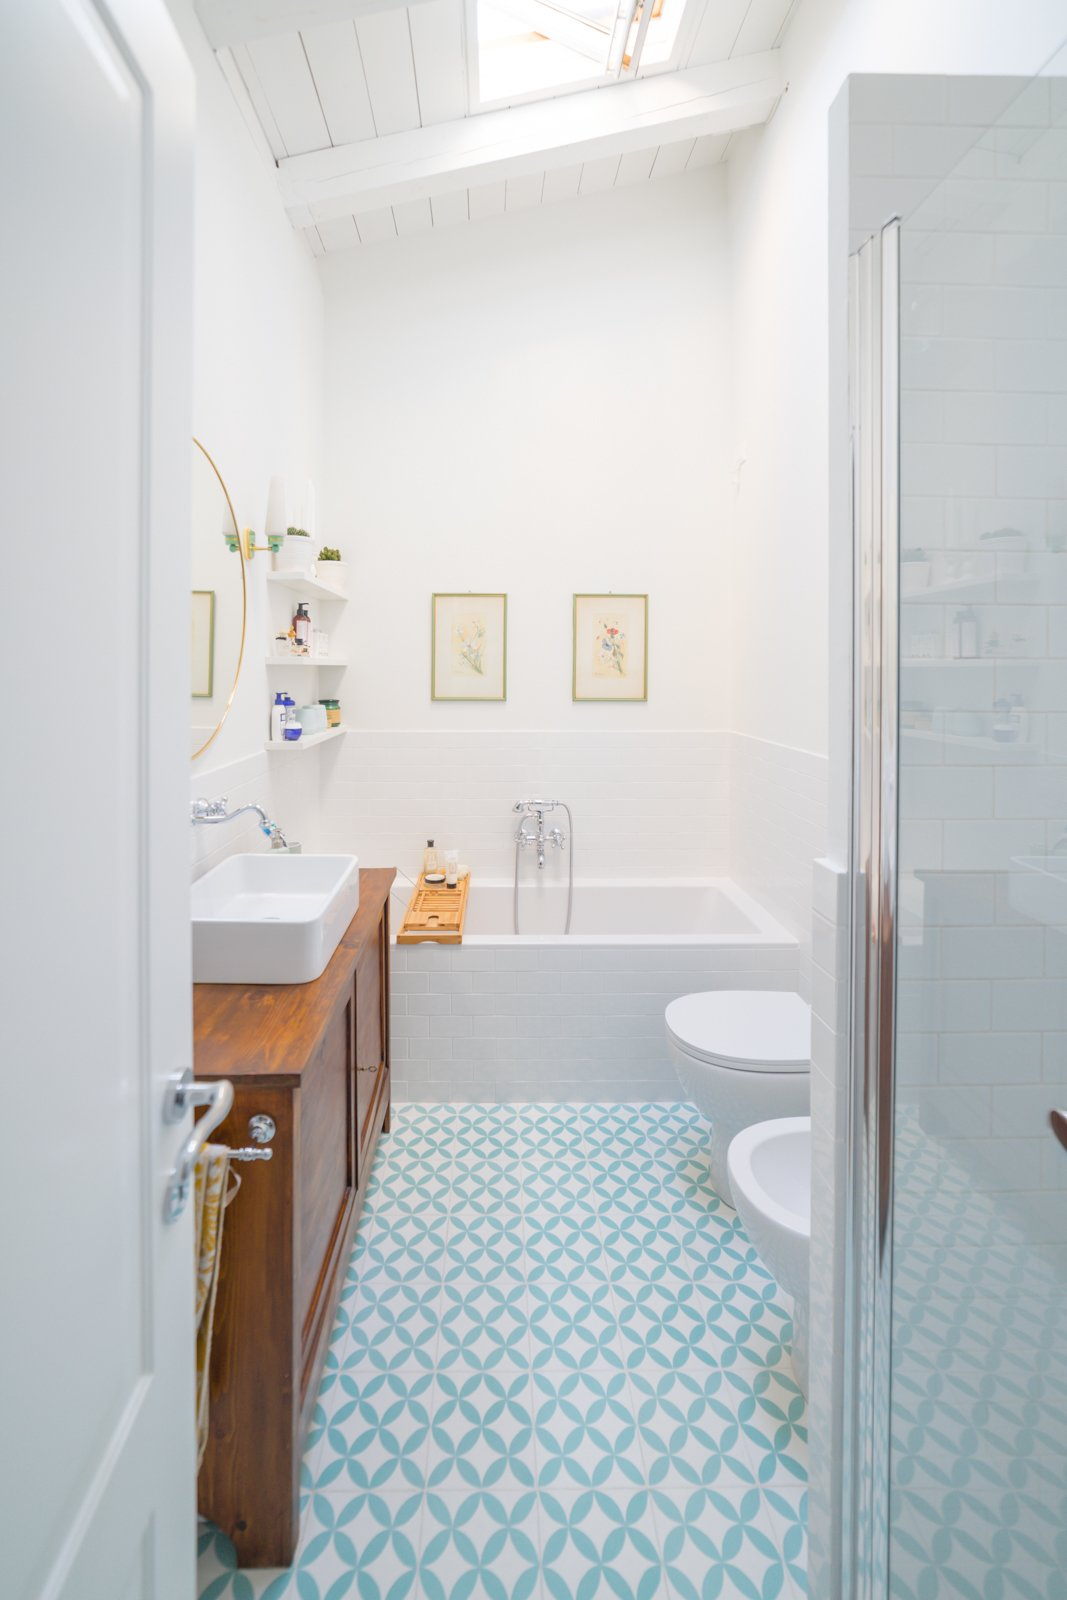 """Bath, One Piece, Soaking, Enclosed, Cement Tile, Wood, and Vessel A typical Milanese tile known as """"cementine"""" is used for the floors of the kitchen, bathroom, and service areas to create a dialogue between contemporary and traditional elements.  Best Bath One Piece Vessel Enclosed Photos from A Revamped Modern Home Is Sprinkled With Old-World Charm"""